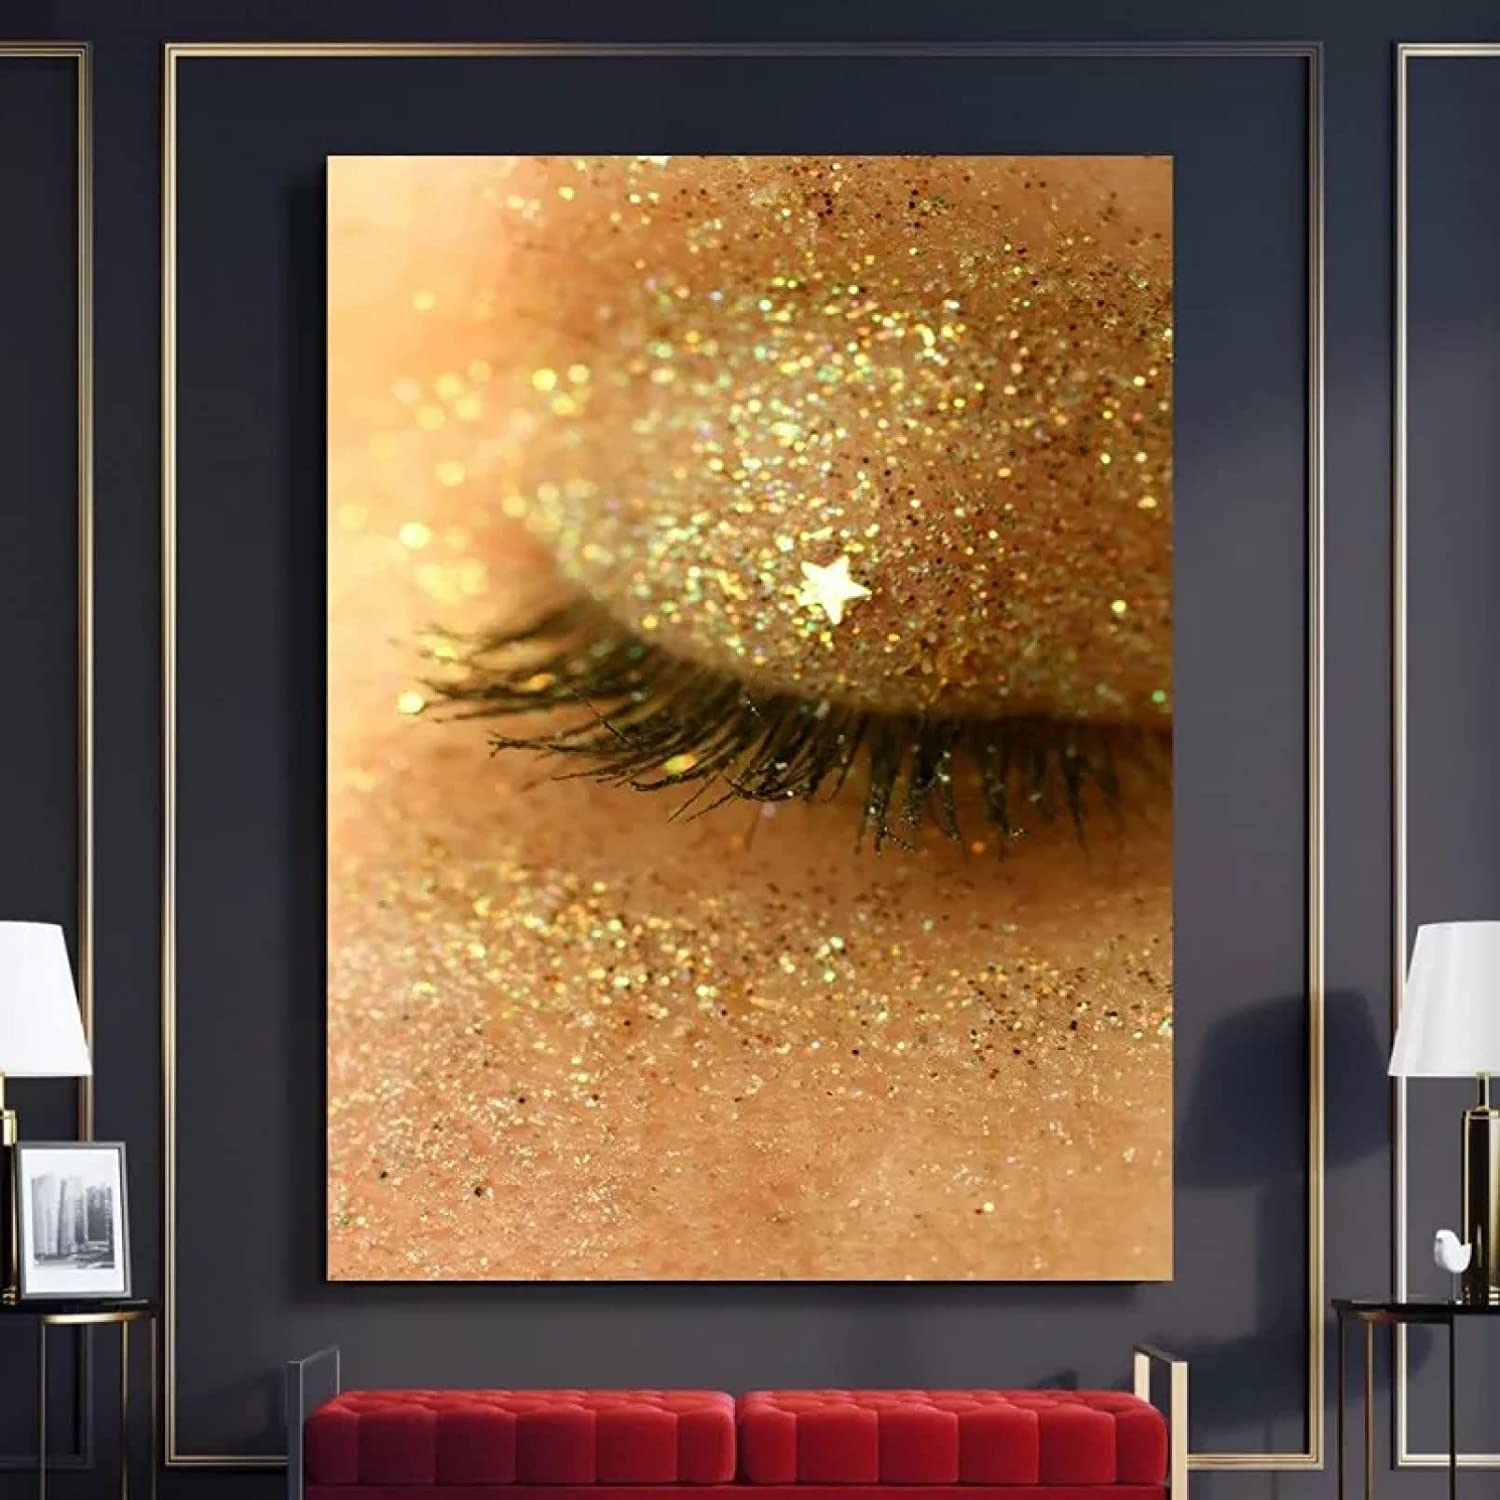 Wall Art Decoration Painting High quality new Hd Eyelashes Gold H Pictures Prints Sale SALE% OFF